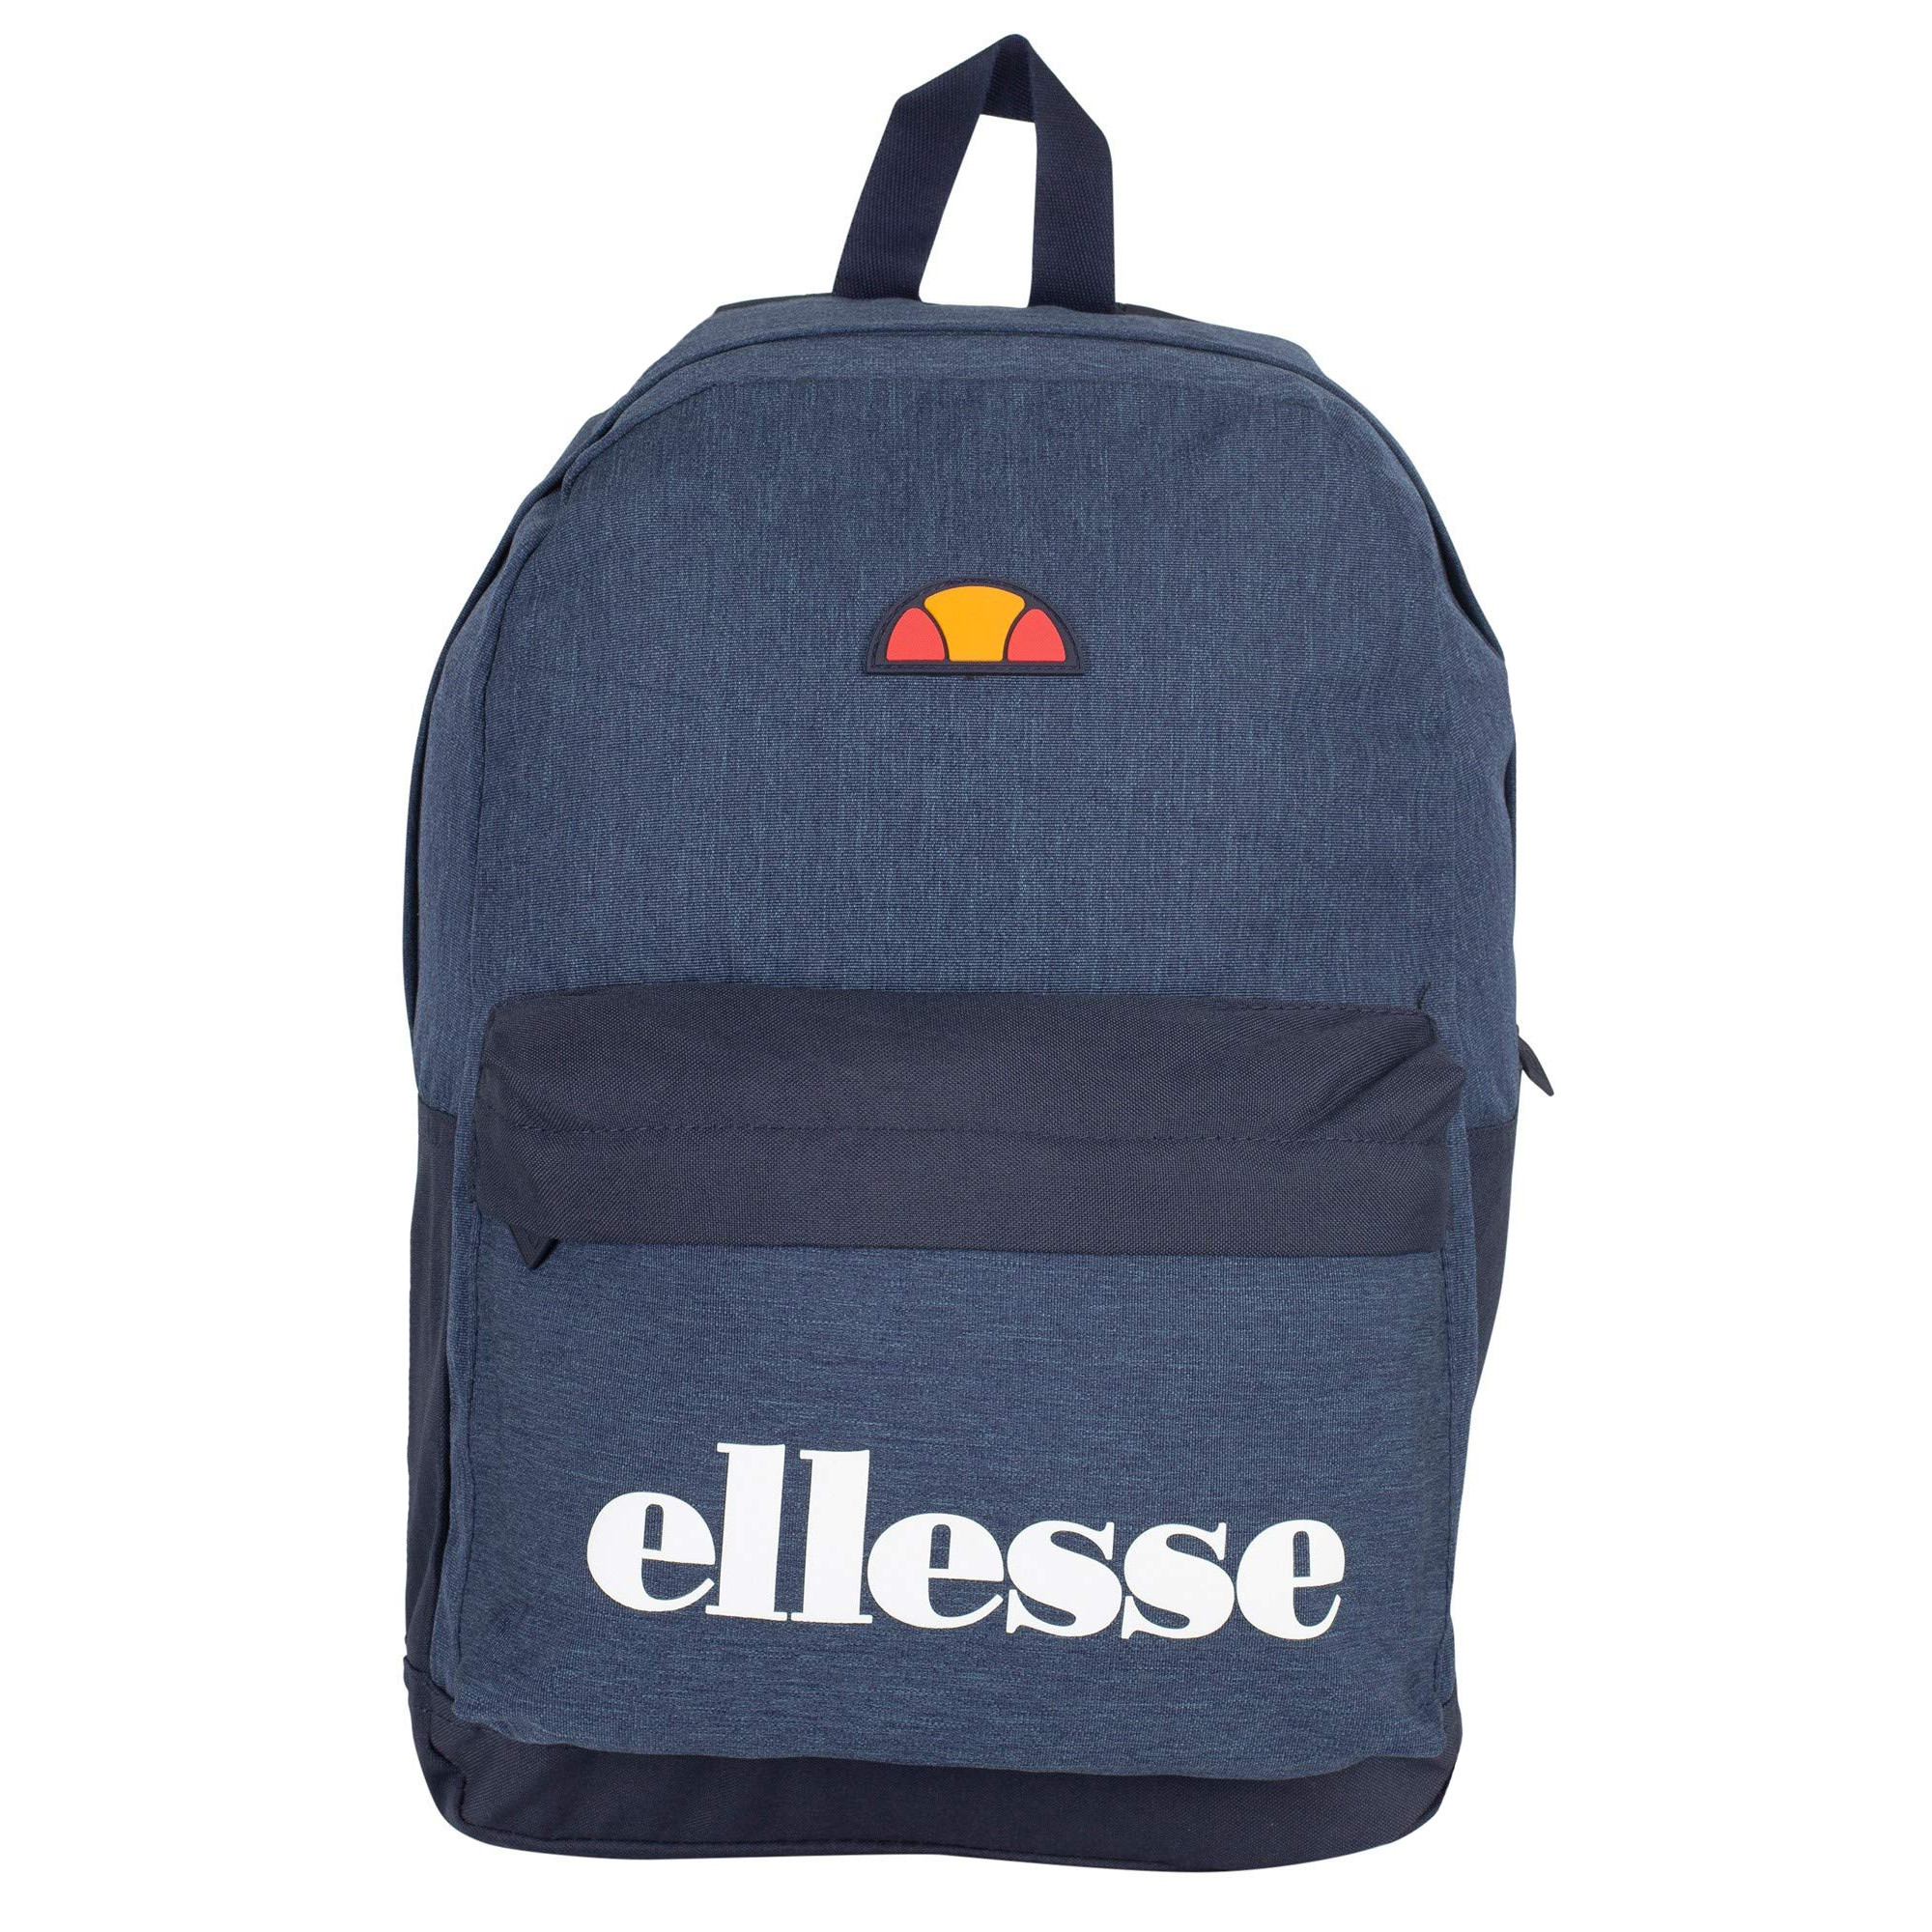 Ellesse Rucksack Regent II Backpack Bag Navy  2537dbbf40c3a